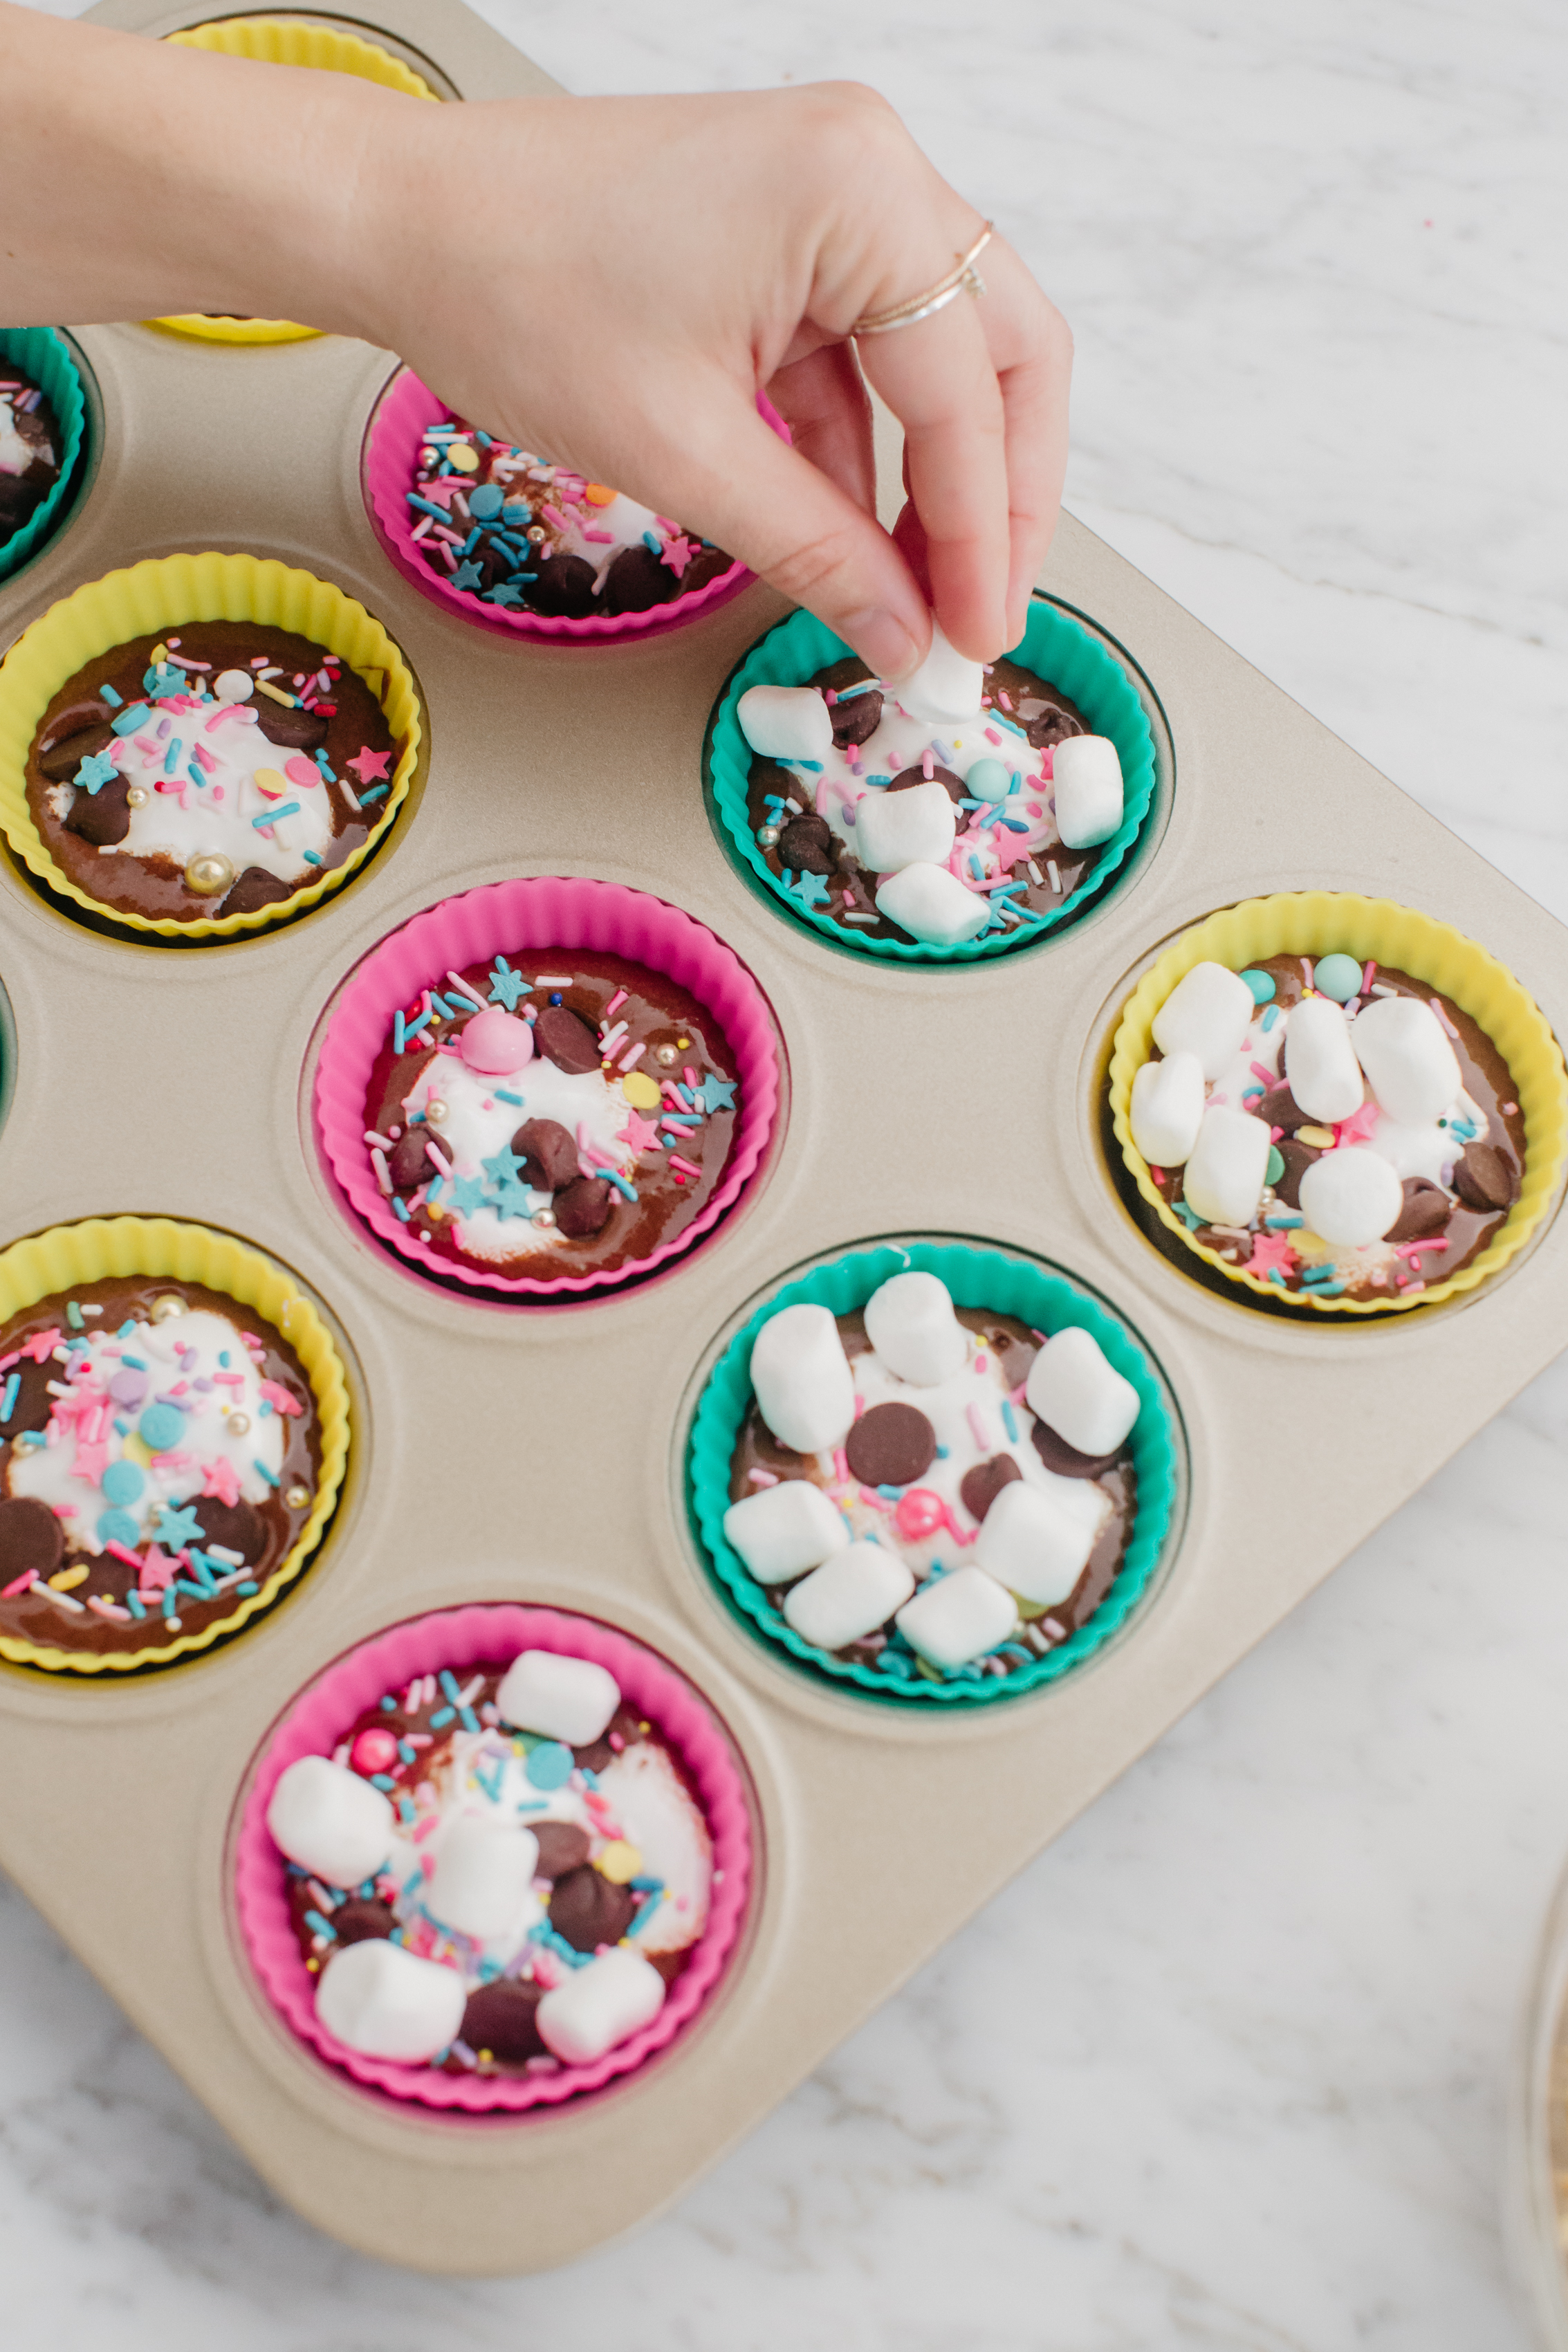 2018_09_18_S'mores-Cupcakes-14.jpg